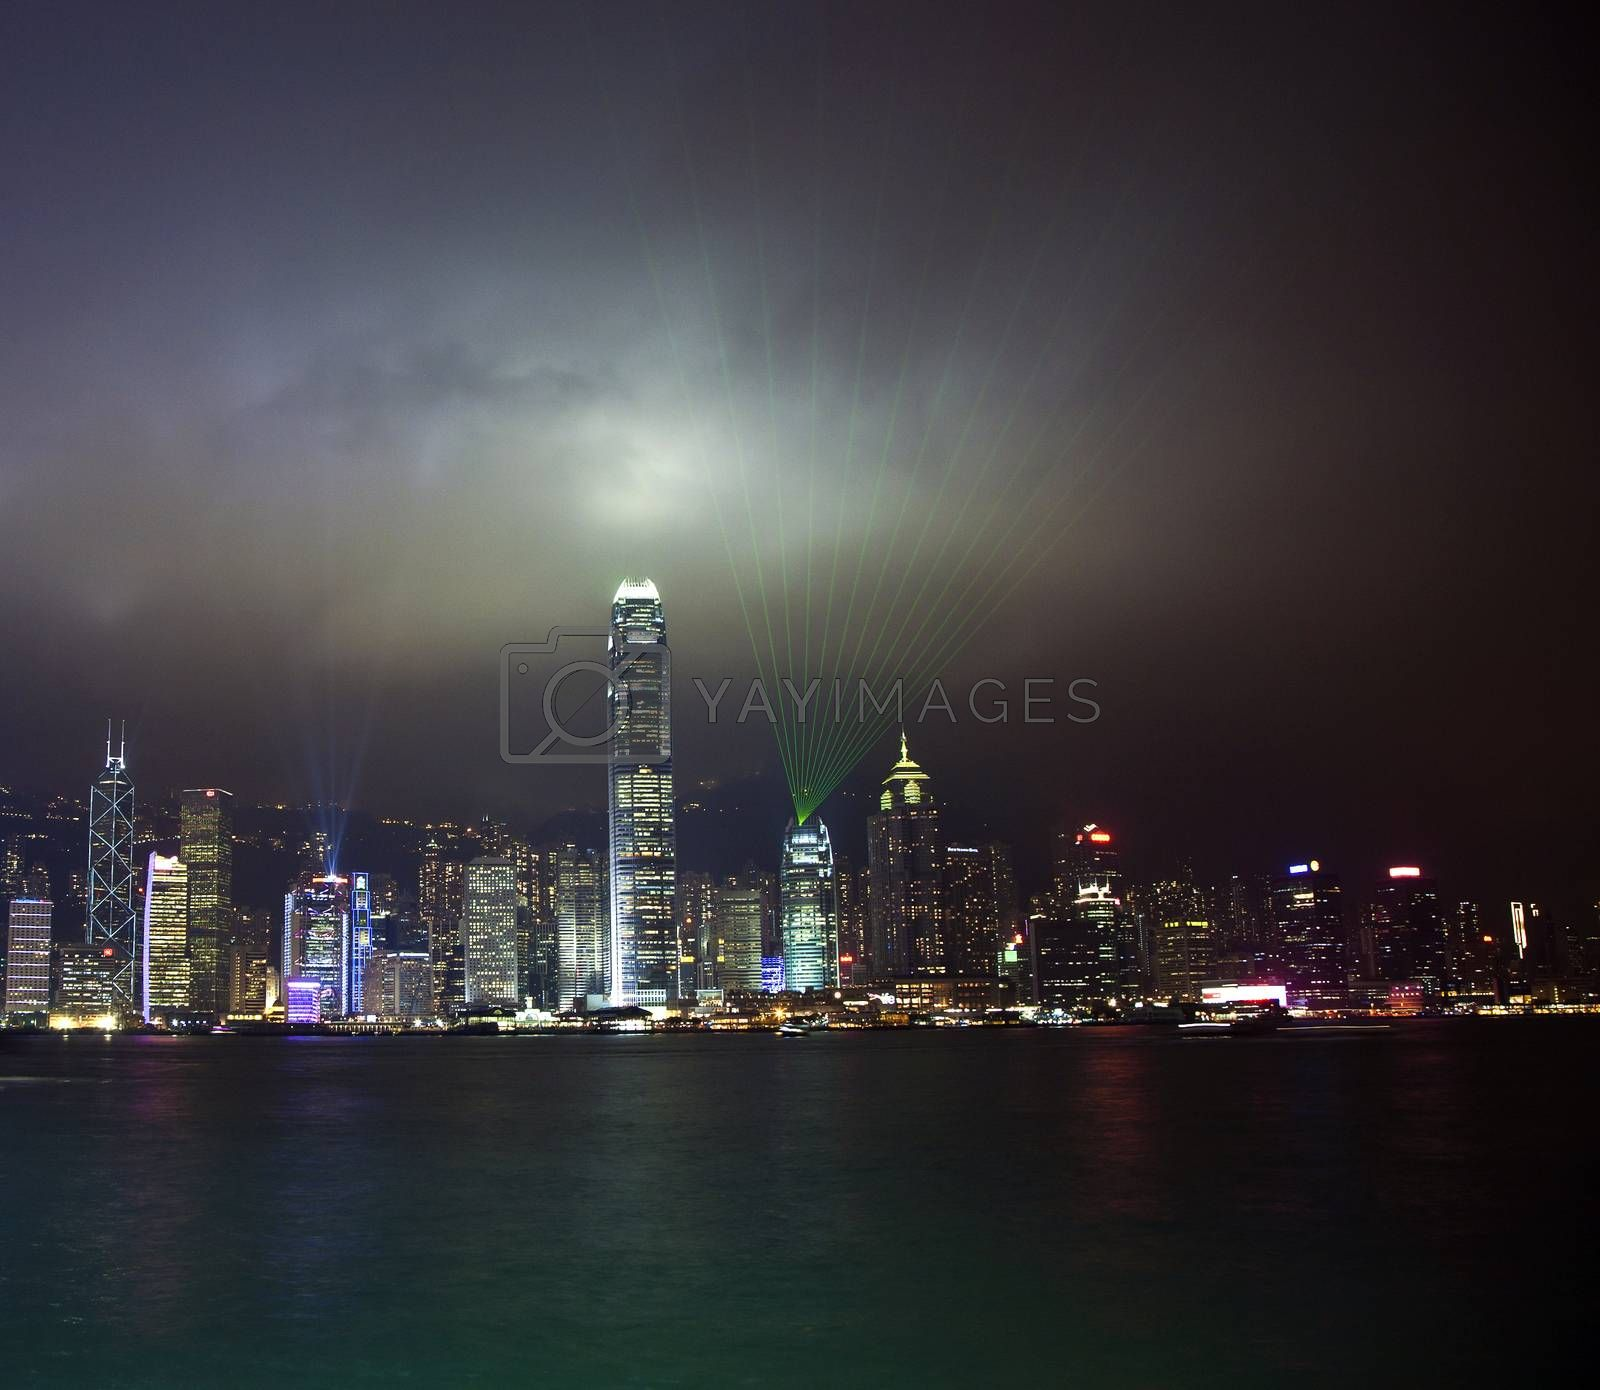 Hong Kong skyline at night with laser beams  by meinzahn